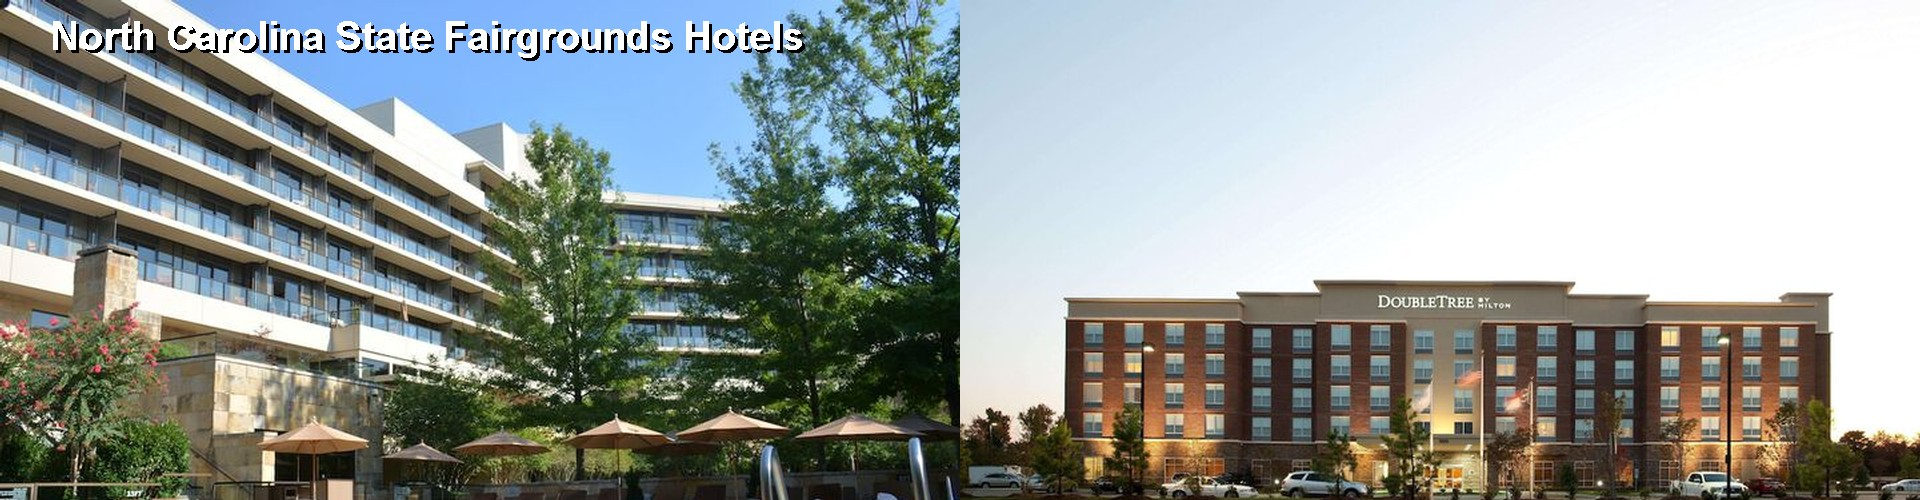 Hotels Near Fairgrounds Raleigh Nc